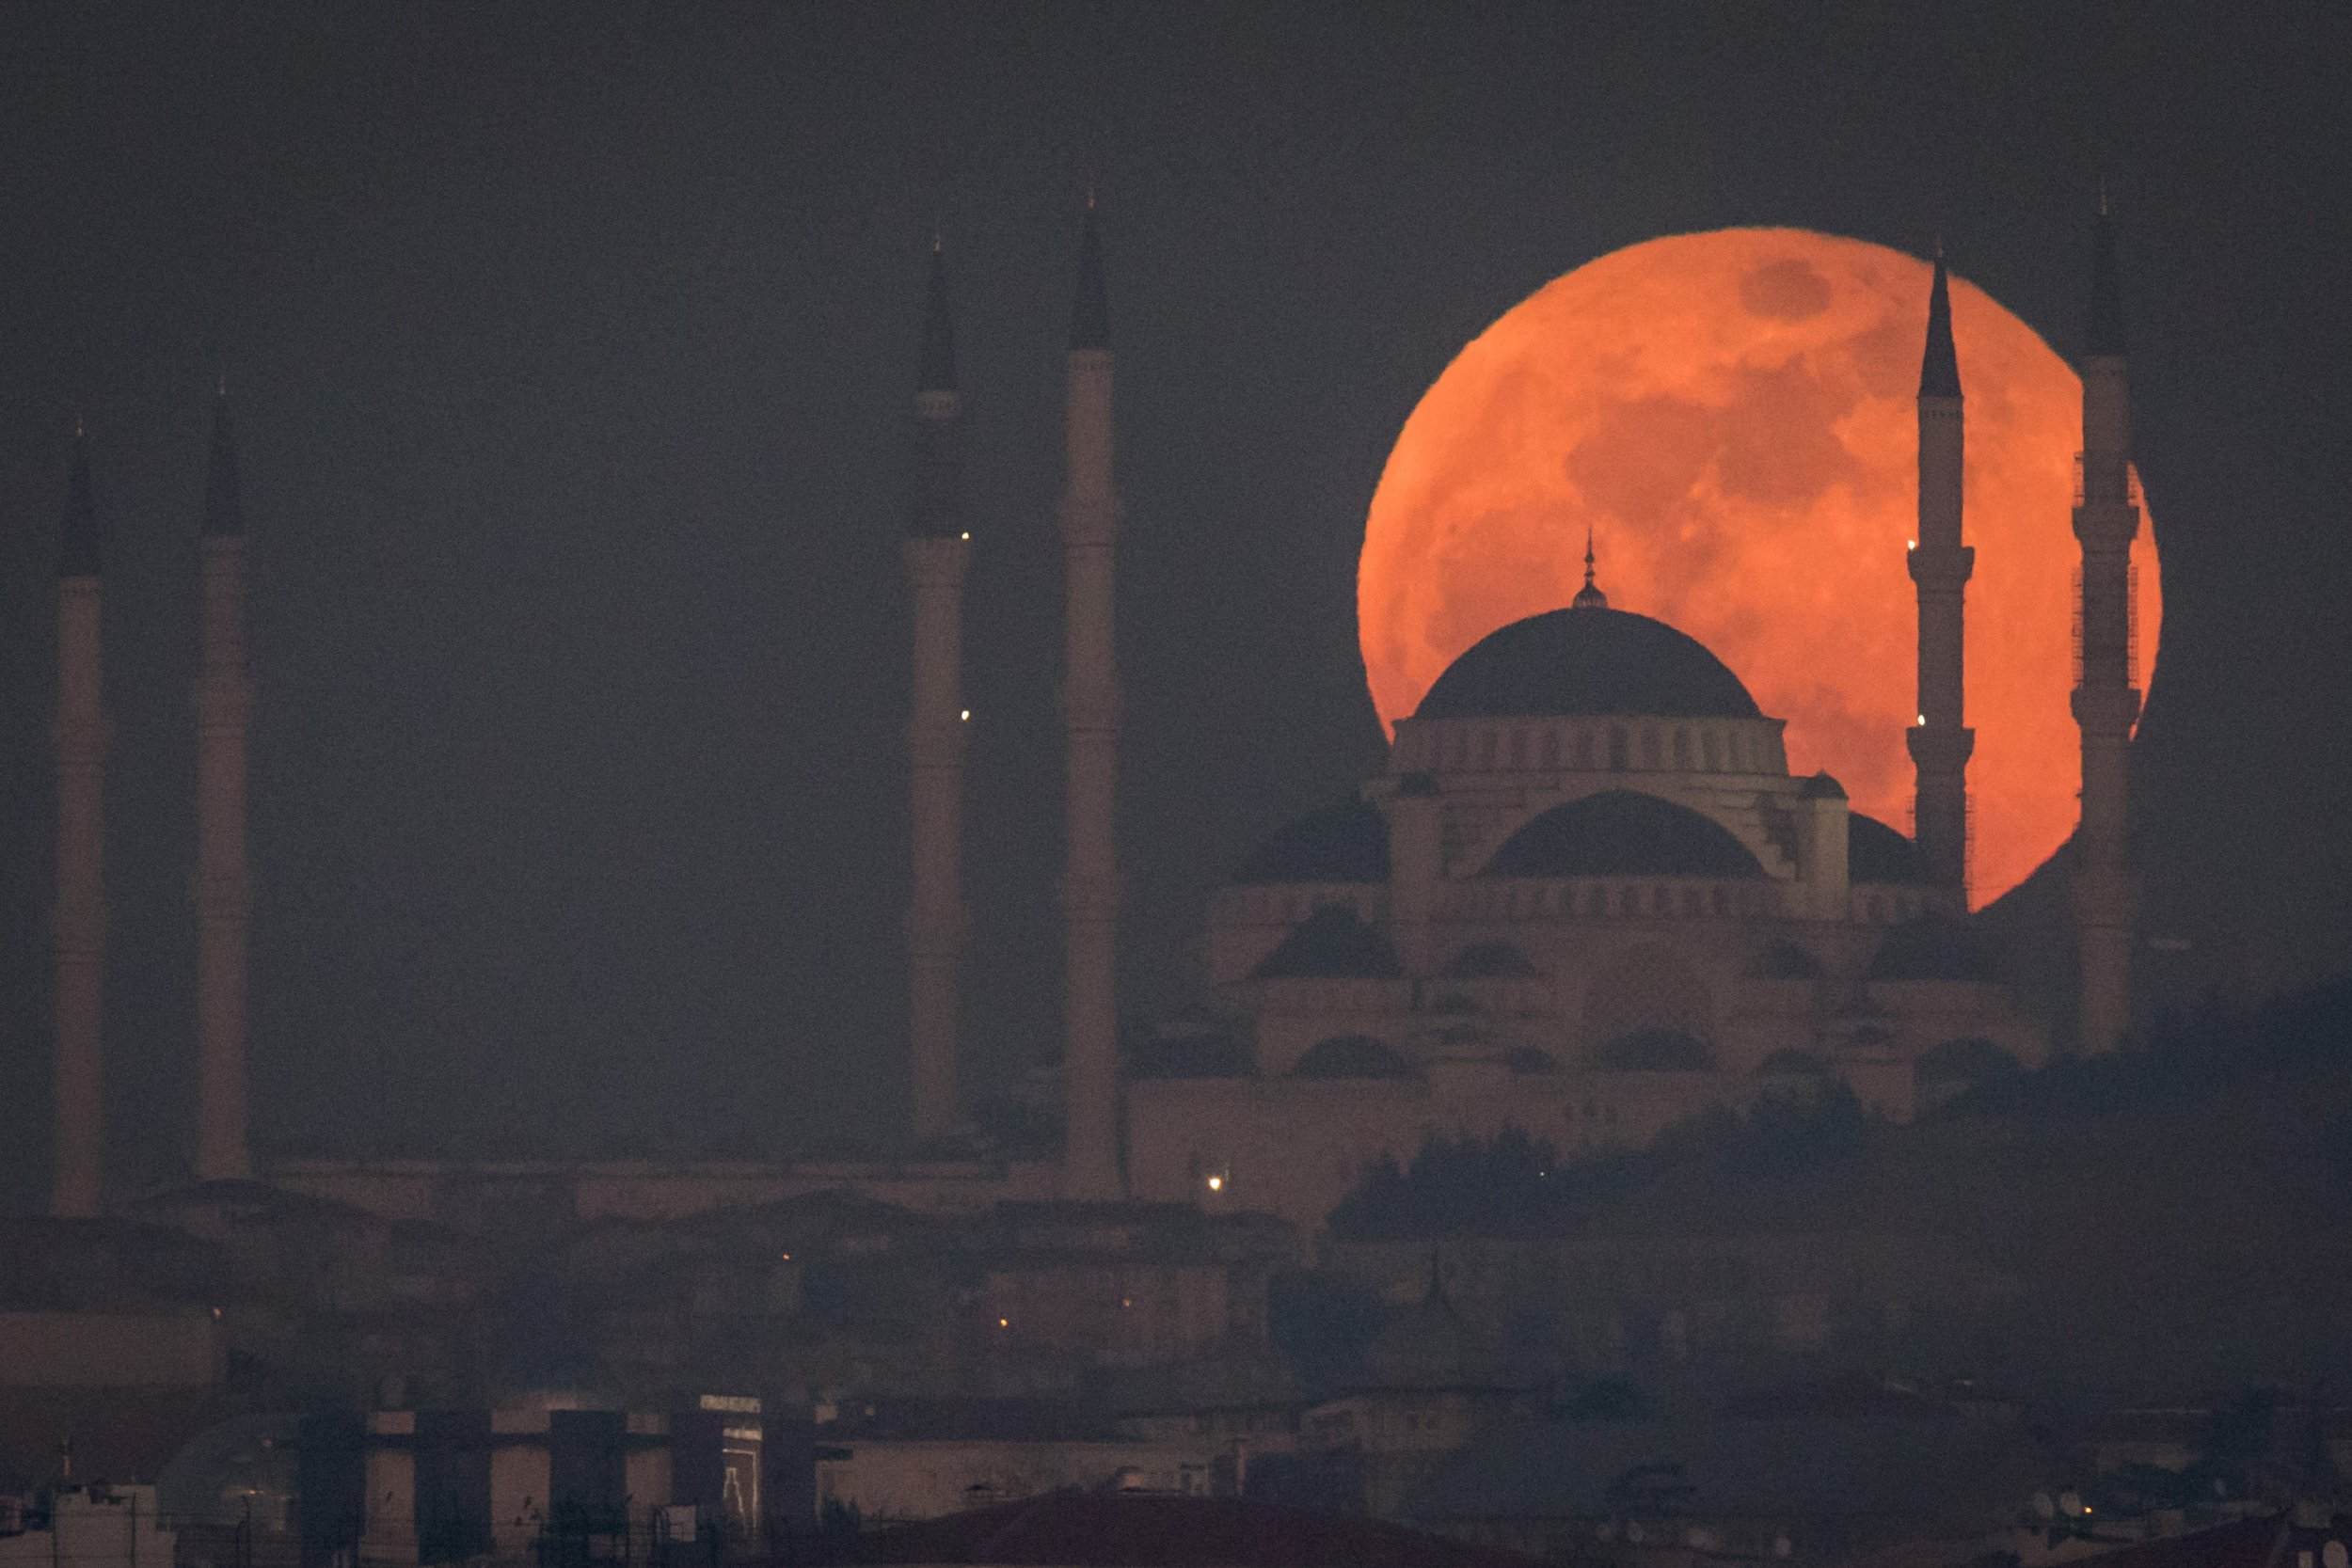 Supermoon and total lunar eclipse 'blood moon' set to coincide for rare celestial event